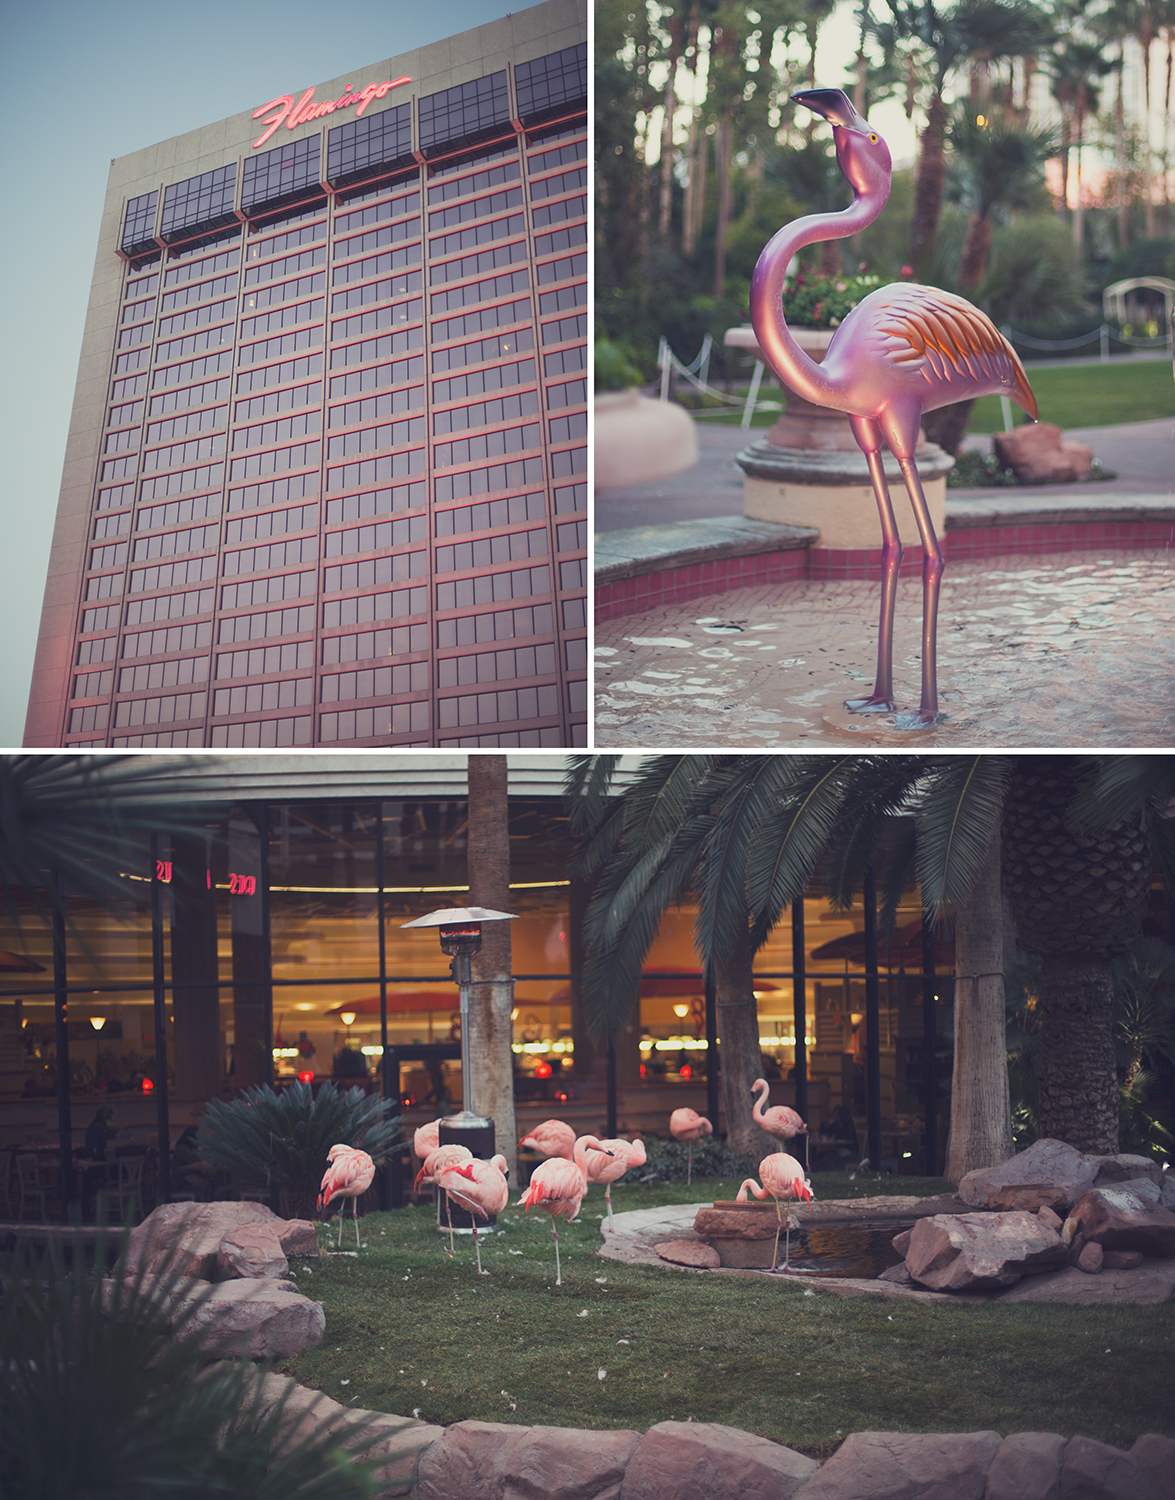 We stayed at the flamingo, which came complete with live flamingos.